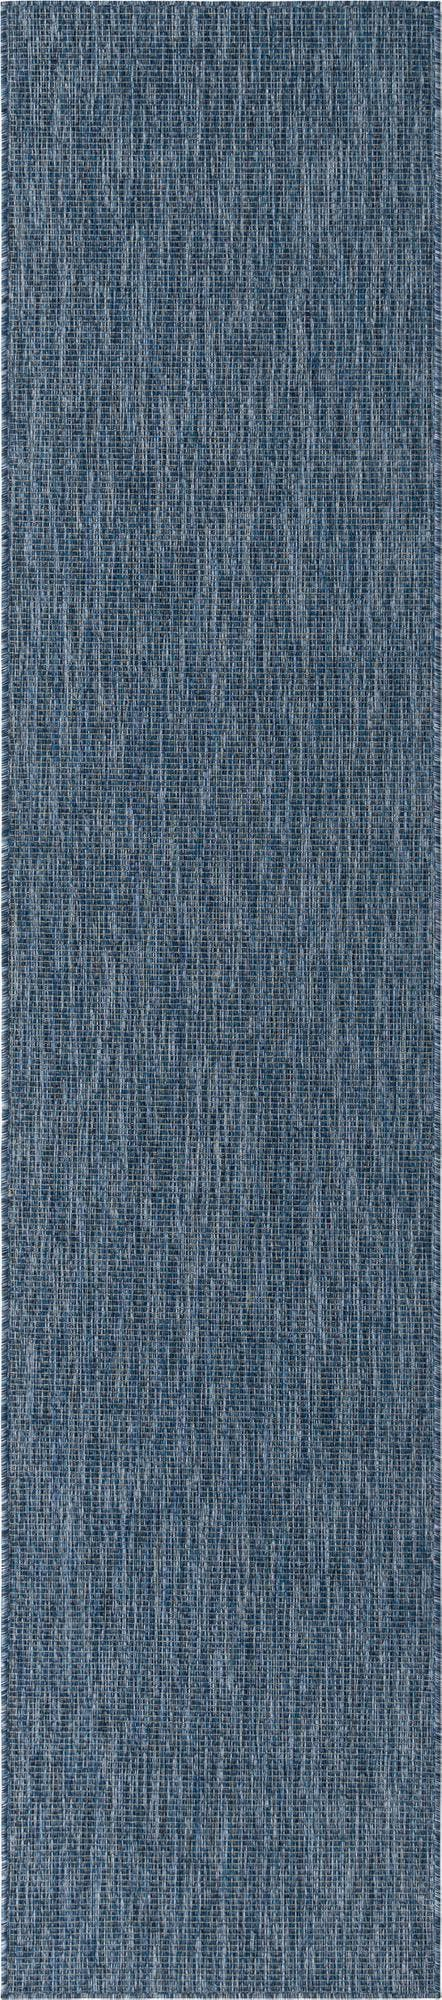 2' 7 x 12' Outdoor Solid Runner Rug main image